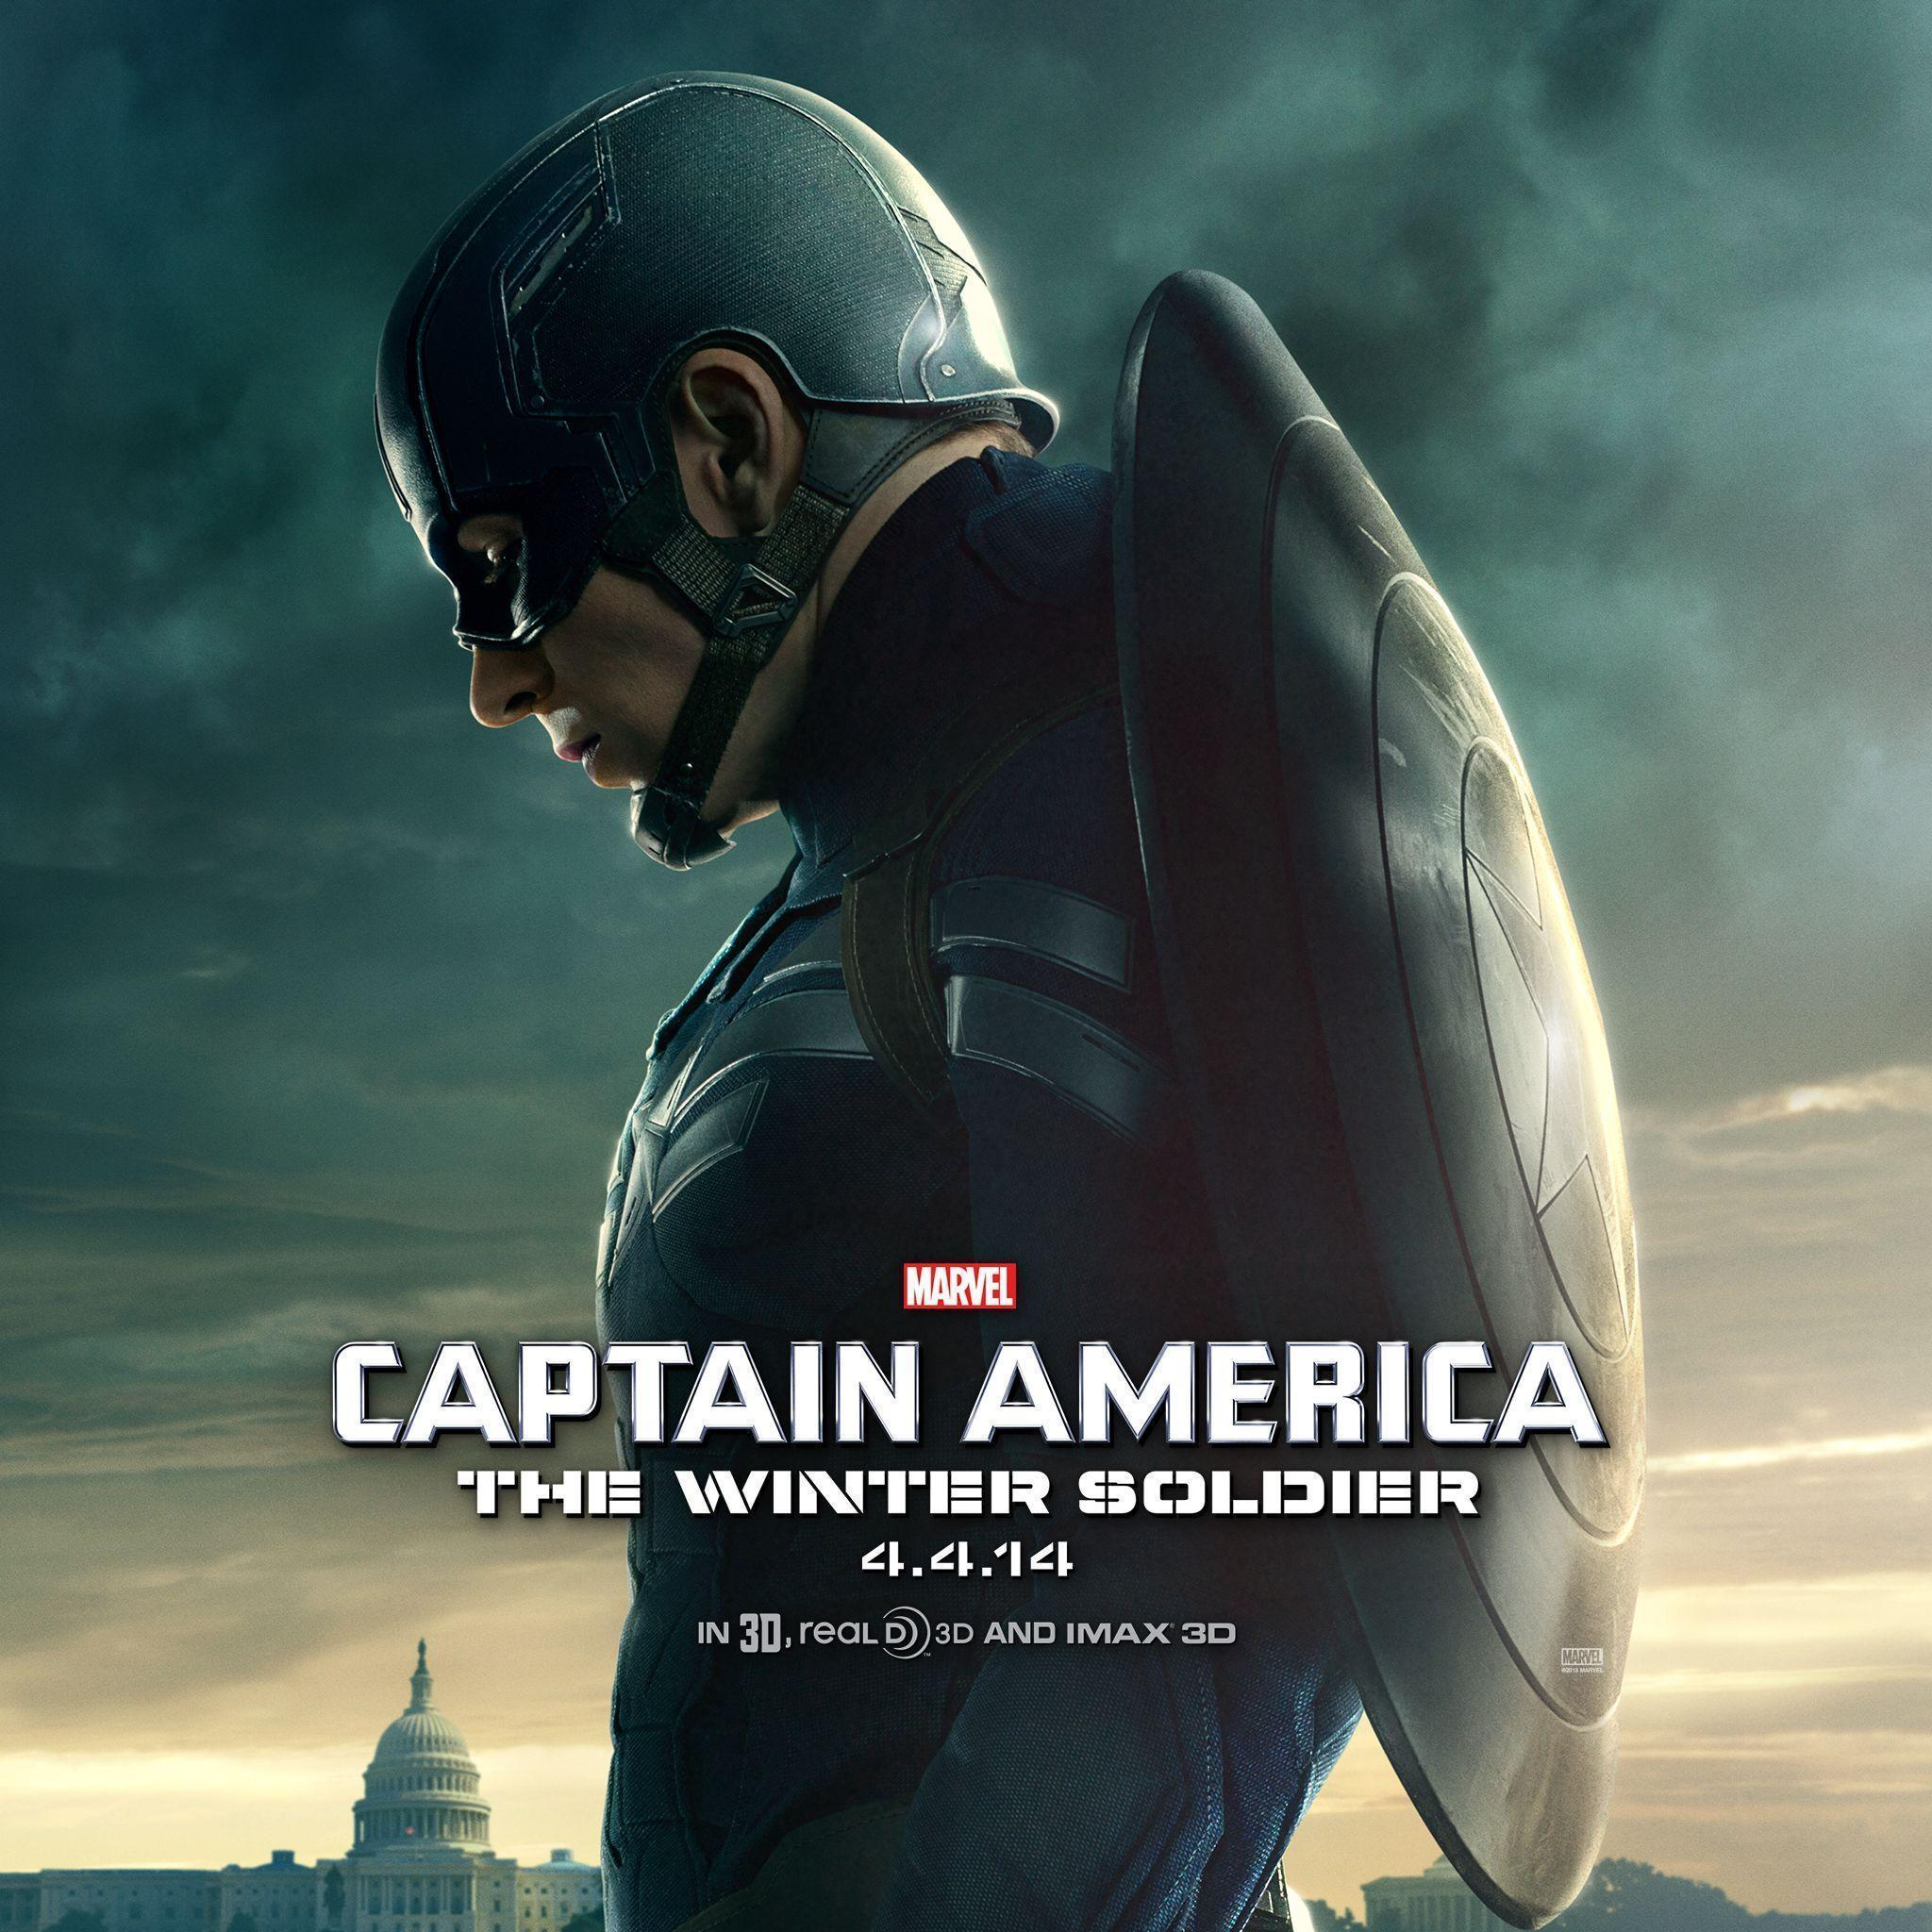 Get Scarlett Johansson's poster/wallpaper for Captain America 2 ...